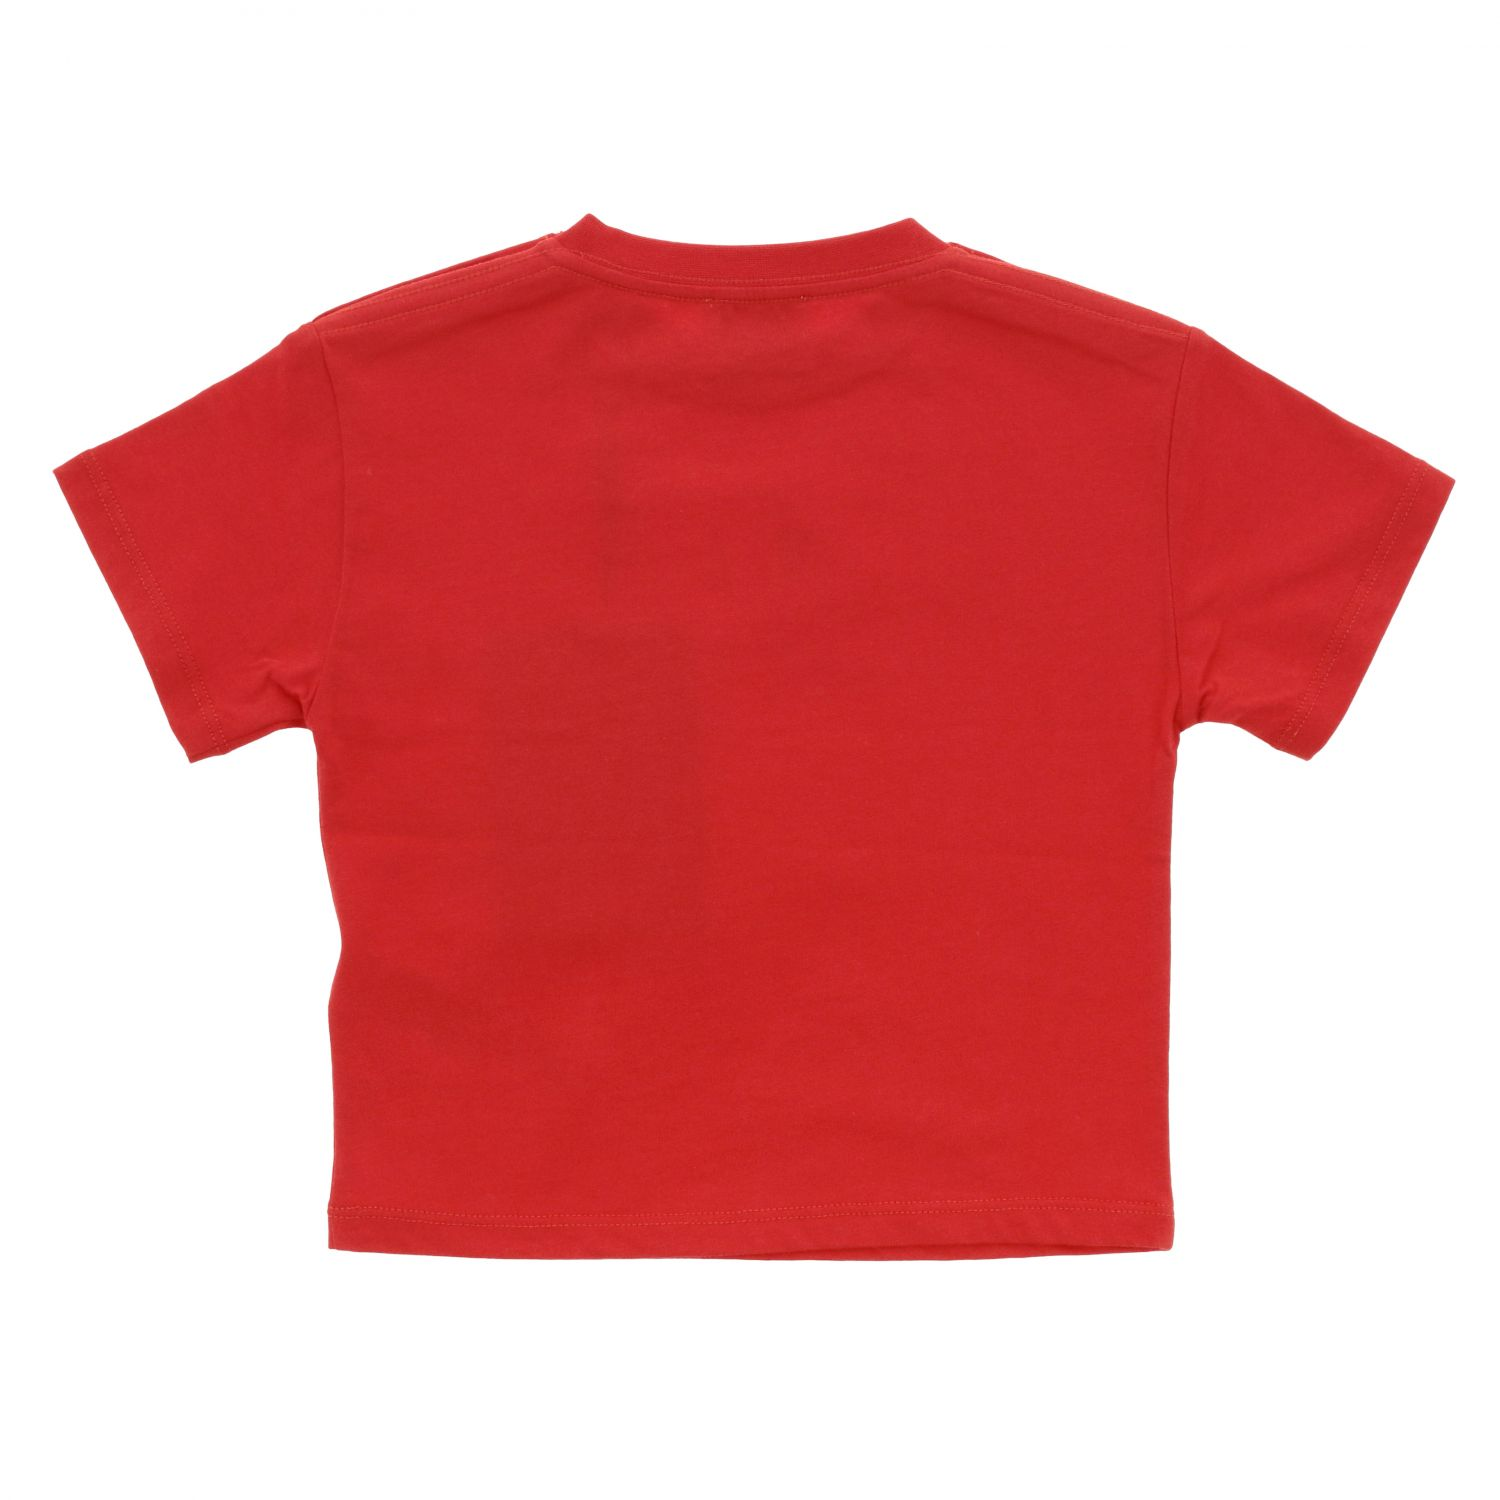 T-shirt Burberry Infant: T-shirt Burberry Infant a maniche corte con logo rosso 2